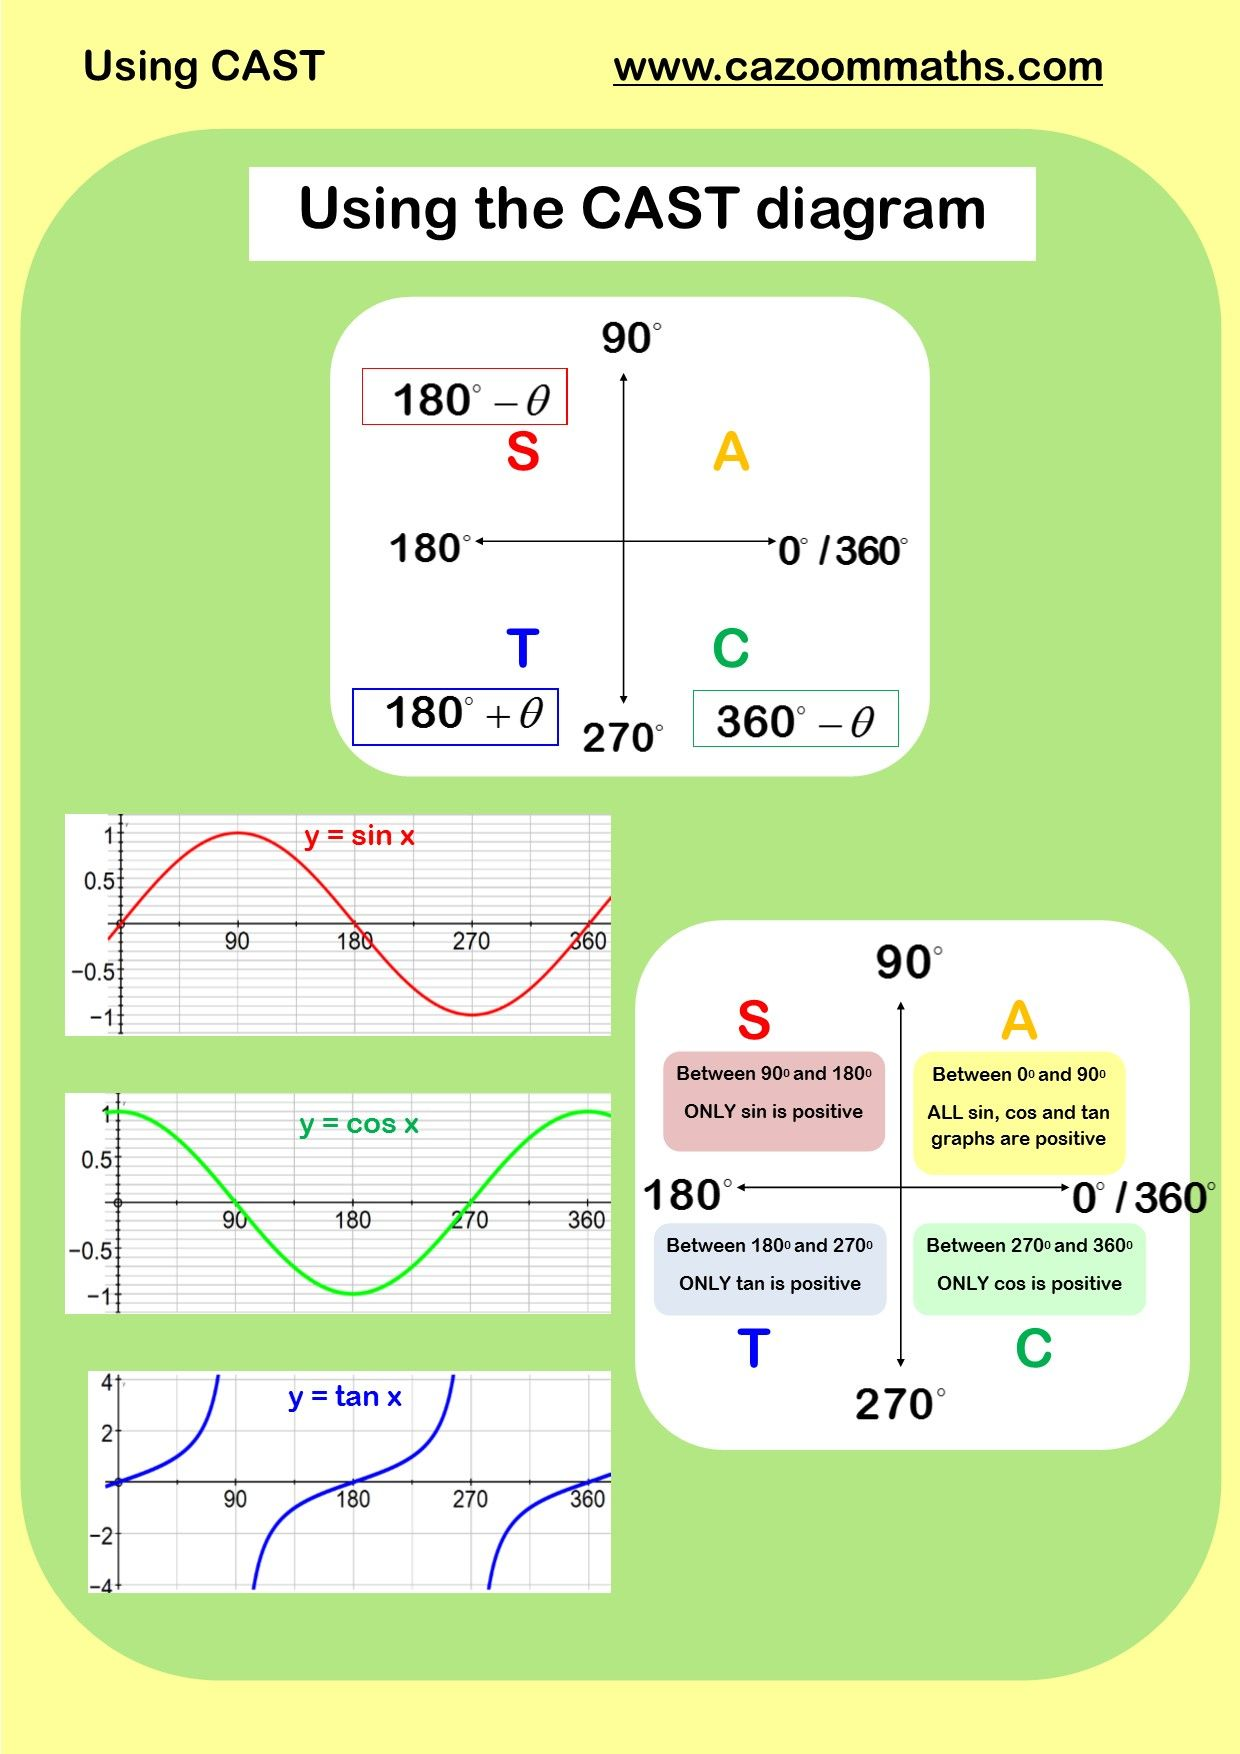 Trig Ometry W Ksheets With Nswers Trig Ometry W Ksheets